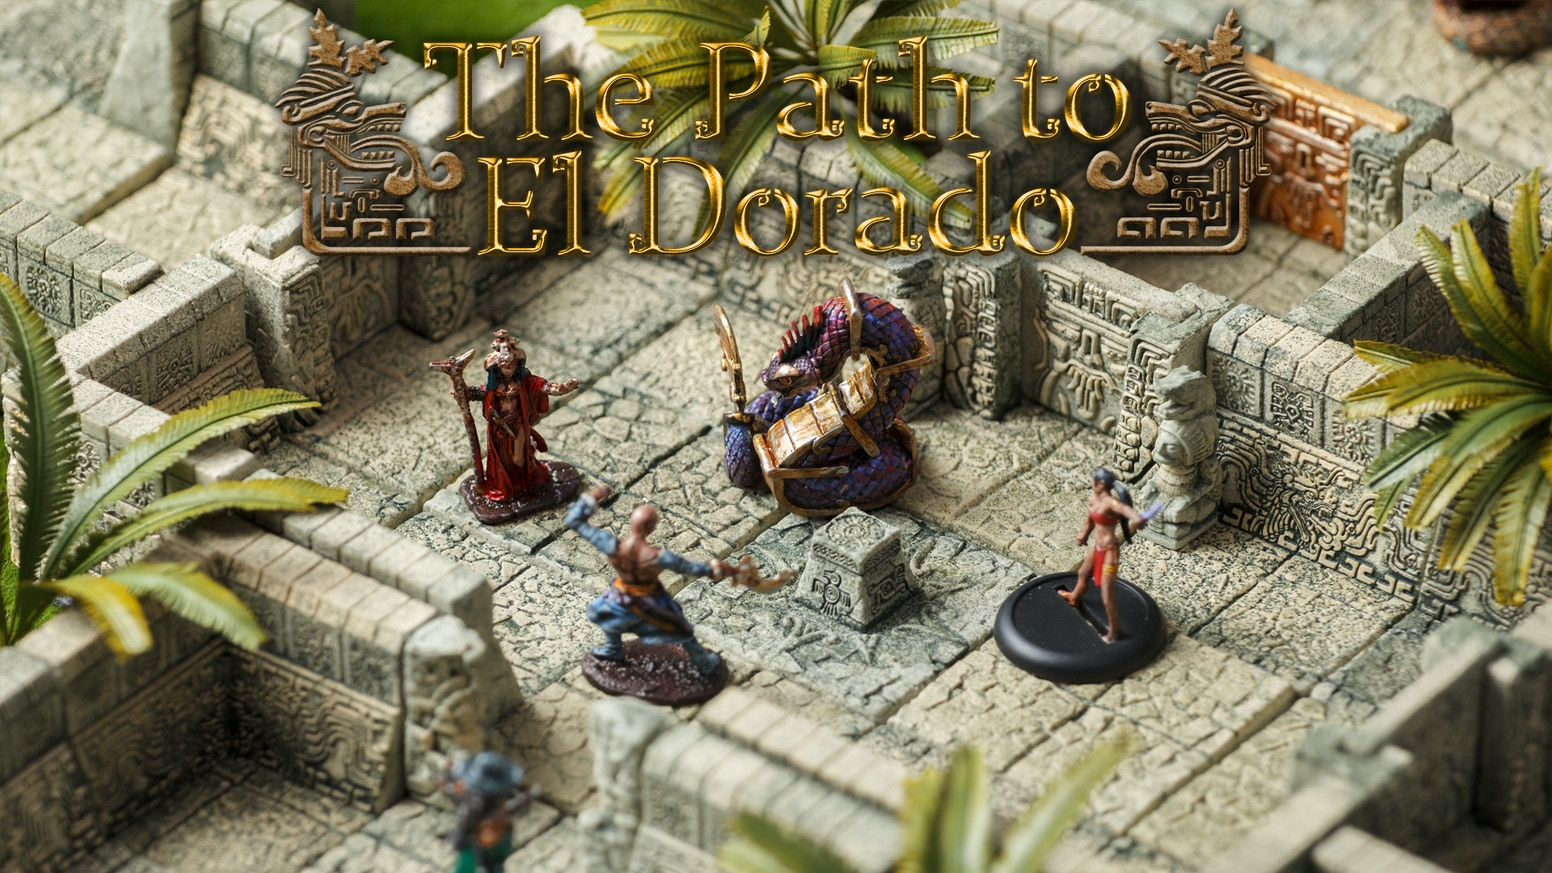 The Path to El Dorado - Aztec terrain tiles, 25mm modular dungeons for tabletop rpgs. Inspired by Aztec ruins and ancient legends.Our pledge manager is now live!